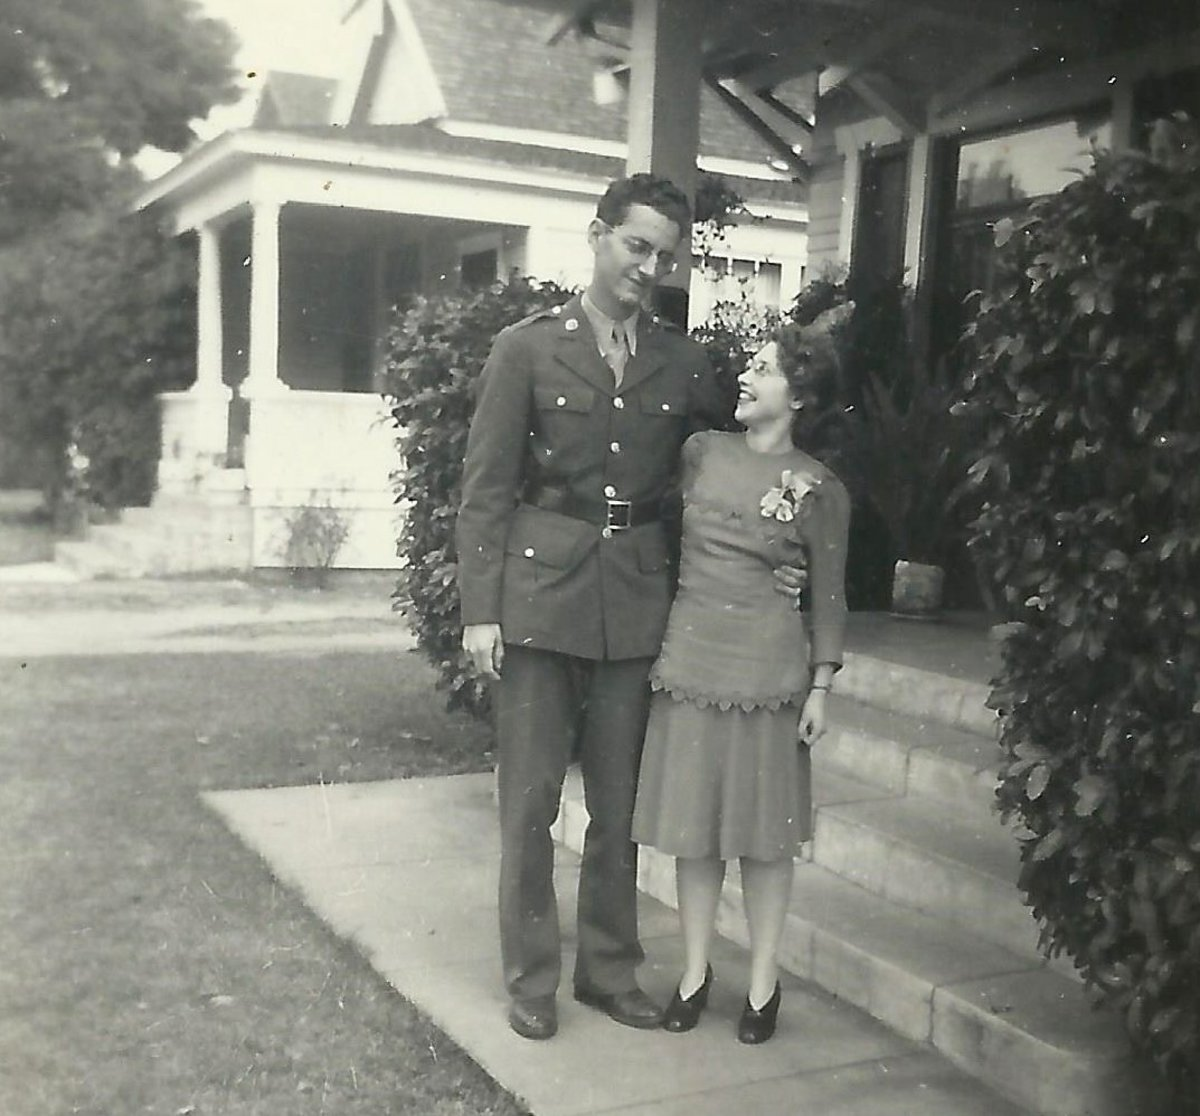 Newlyweds, December 1942 - Two newly married pharmacists prior to Jack's deployment during WWII